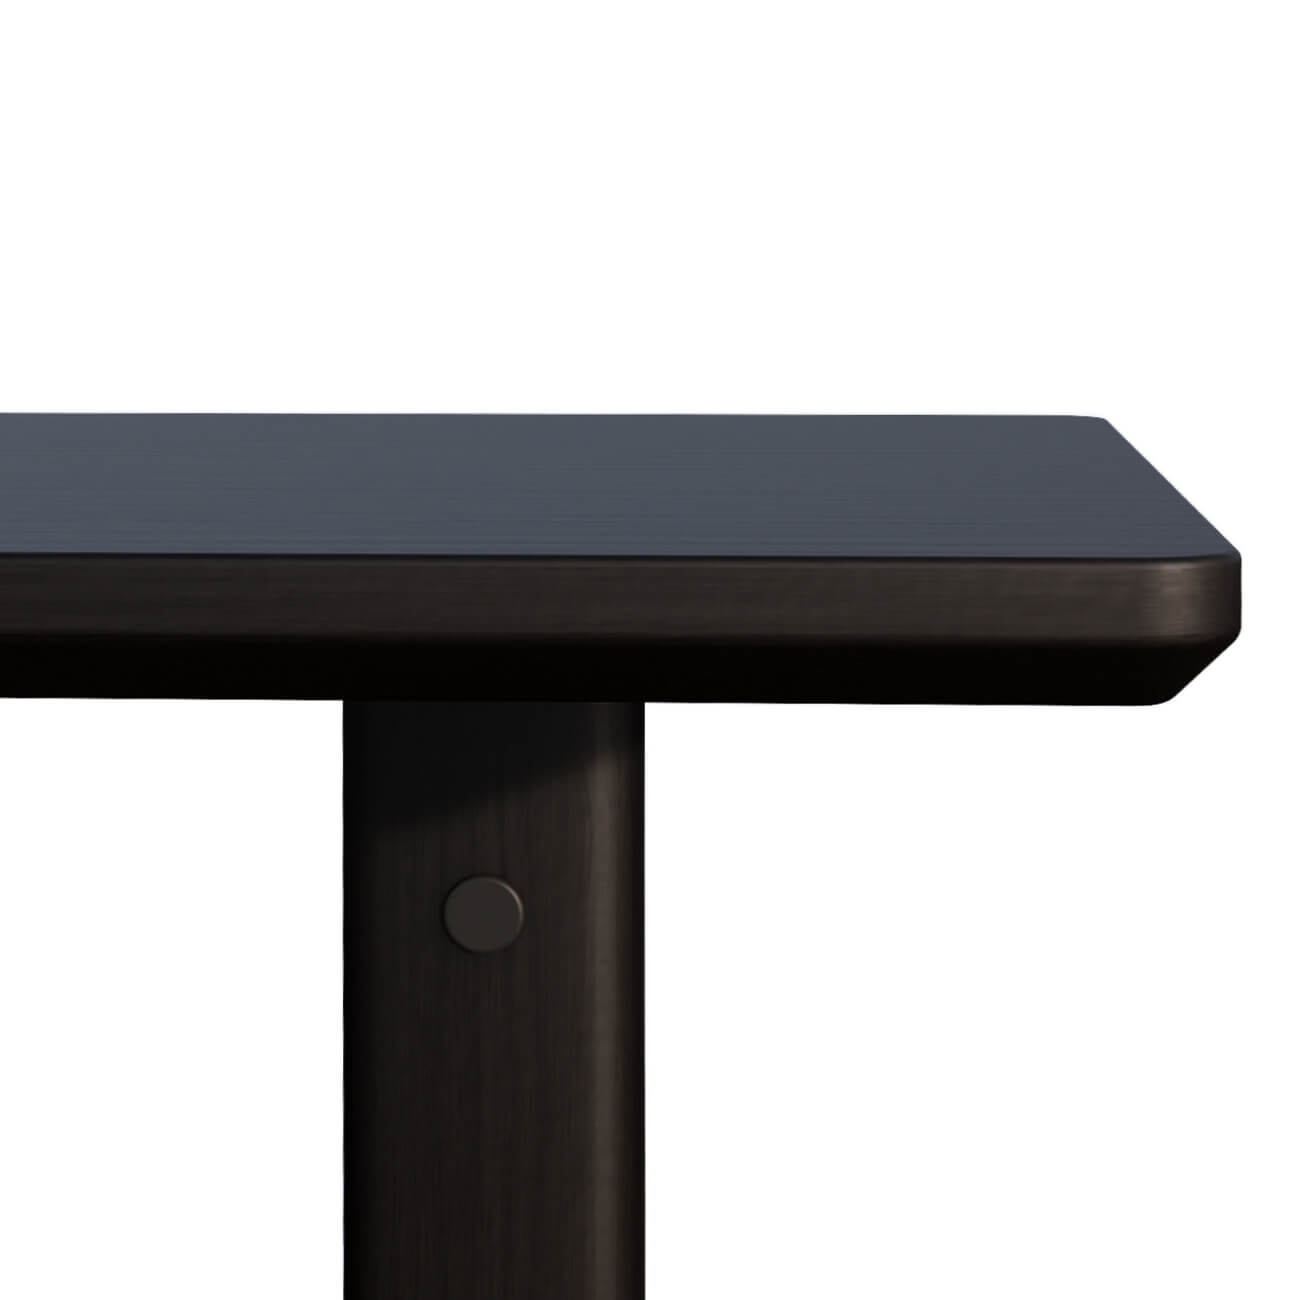 ALFRED TABLE - TOP